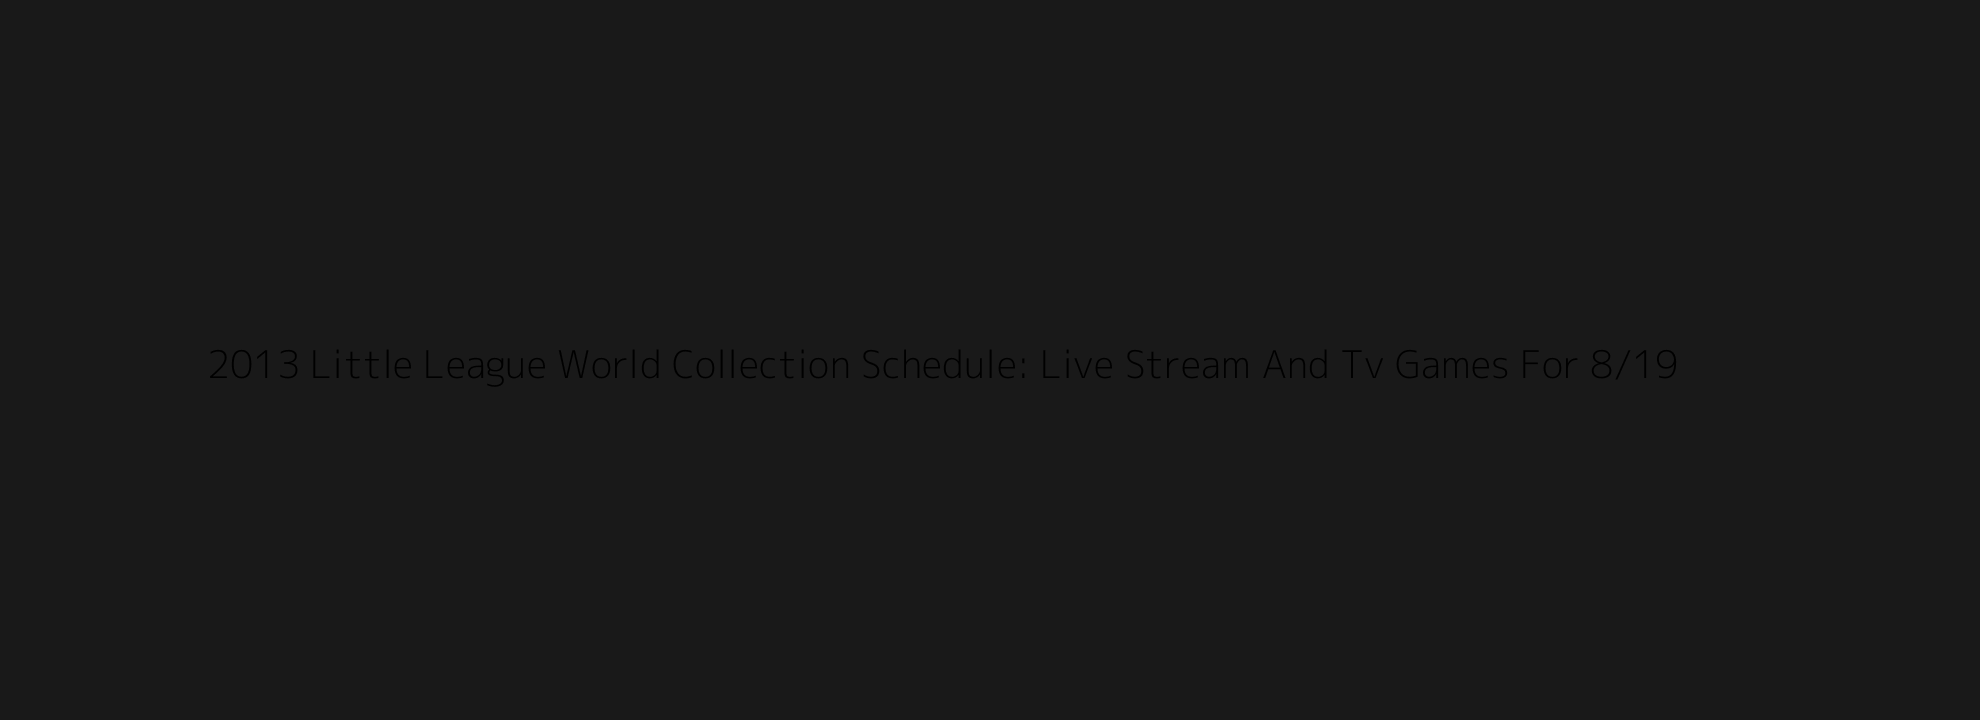 2013 Little League World Collection Schedule: Live Stream And Tv Games For 8/19